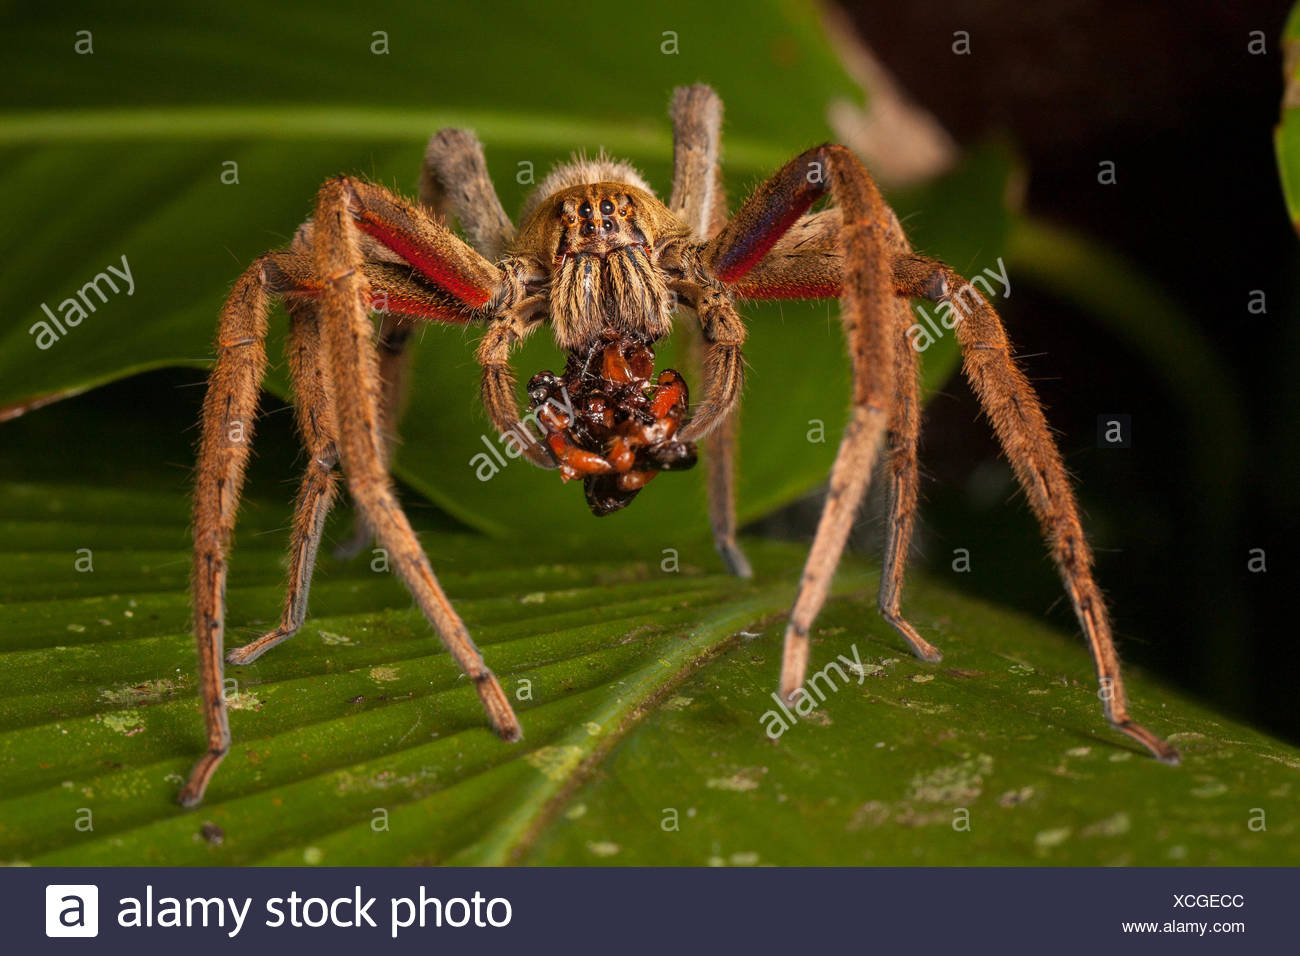 Portrait of a tarantula spider on a leaf. - Stock Image